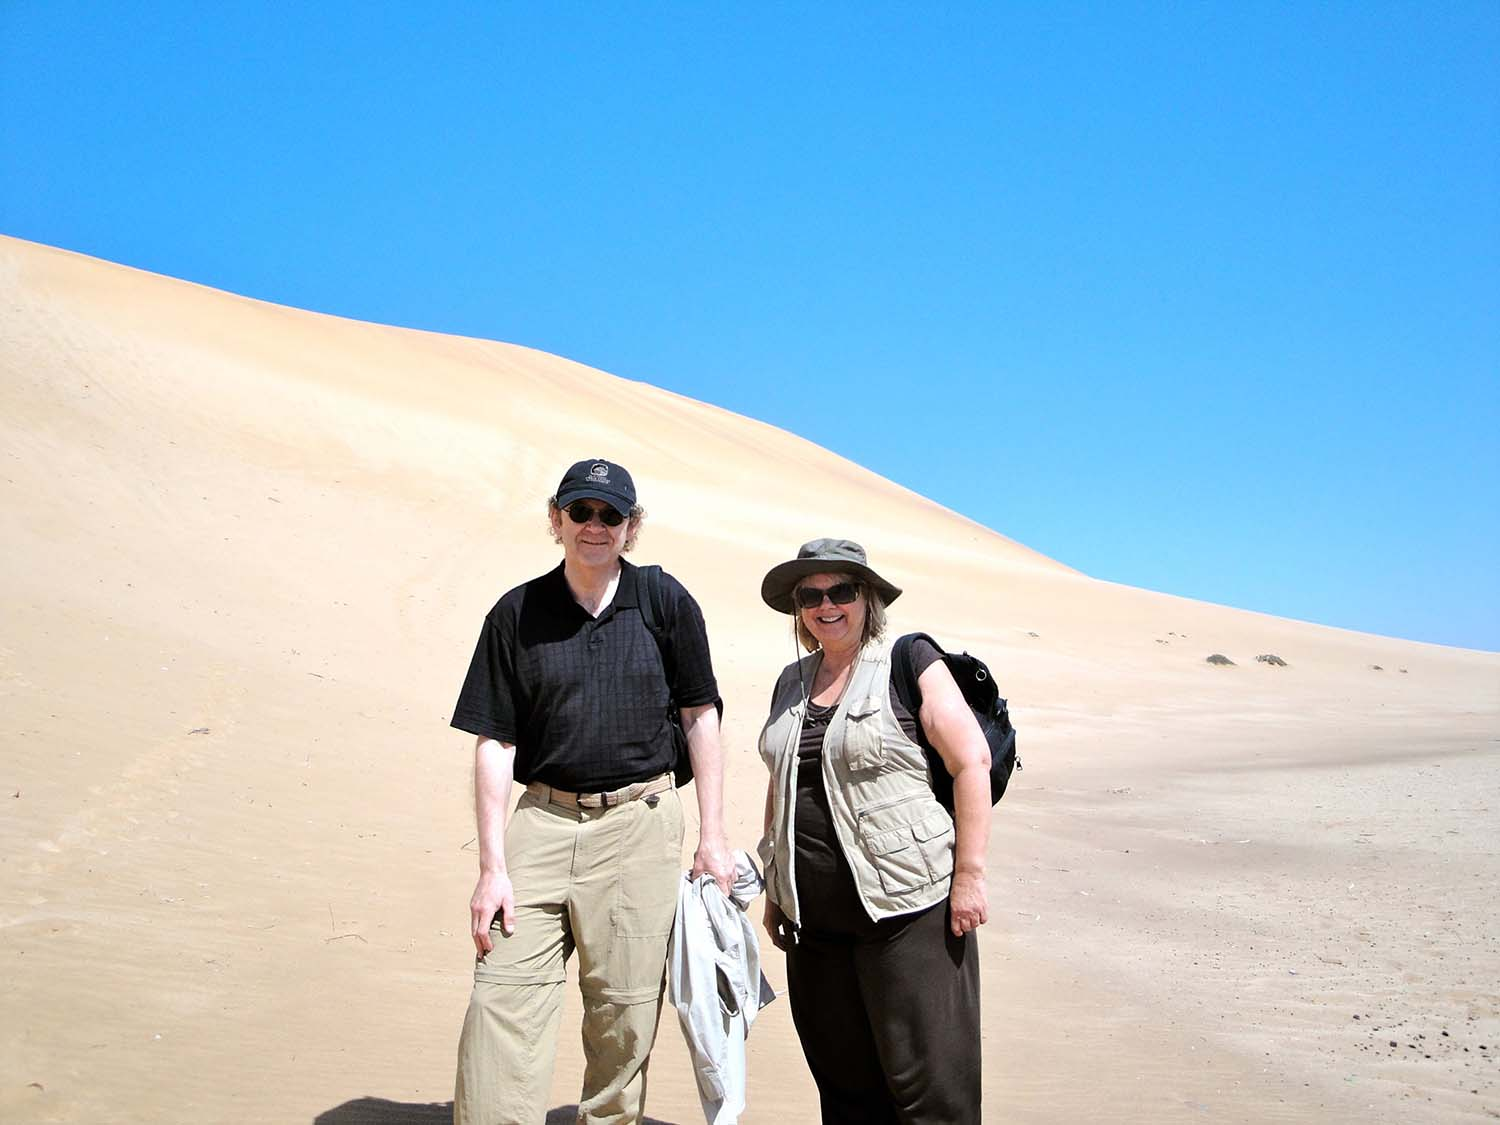 Brian & his wife in Nambia